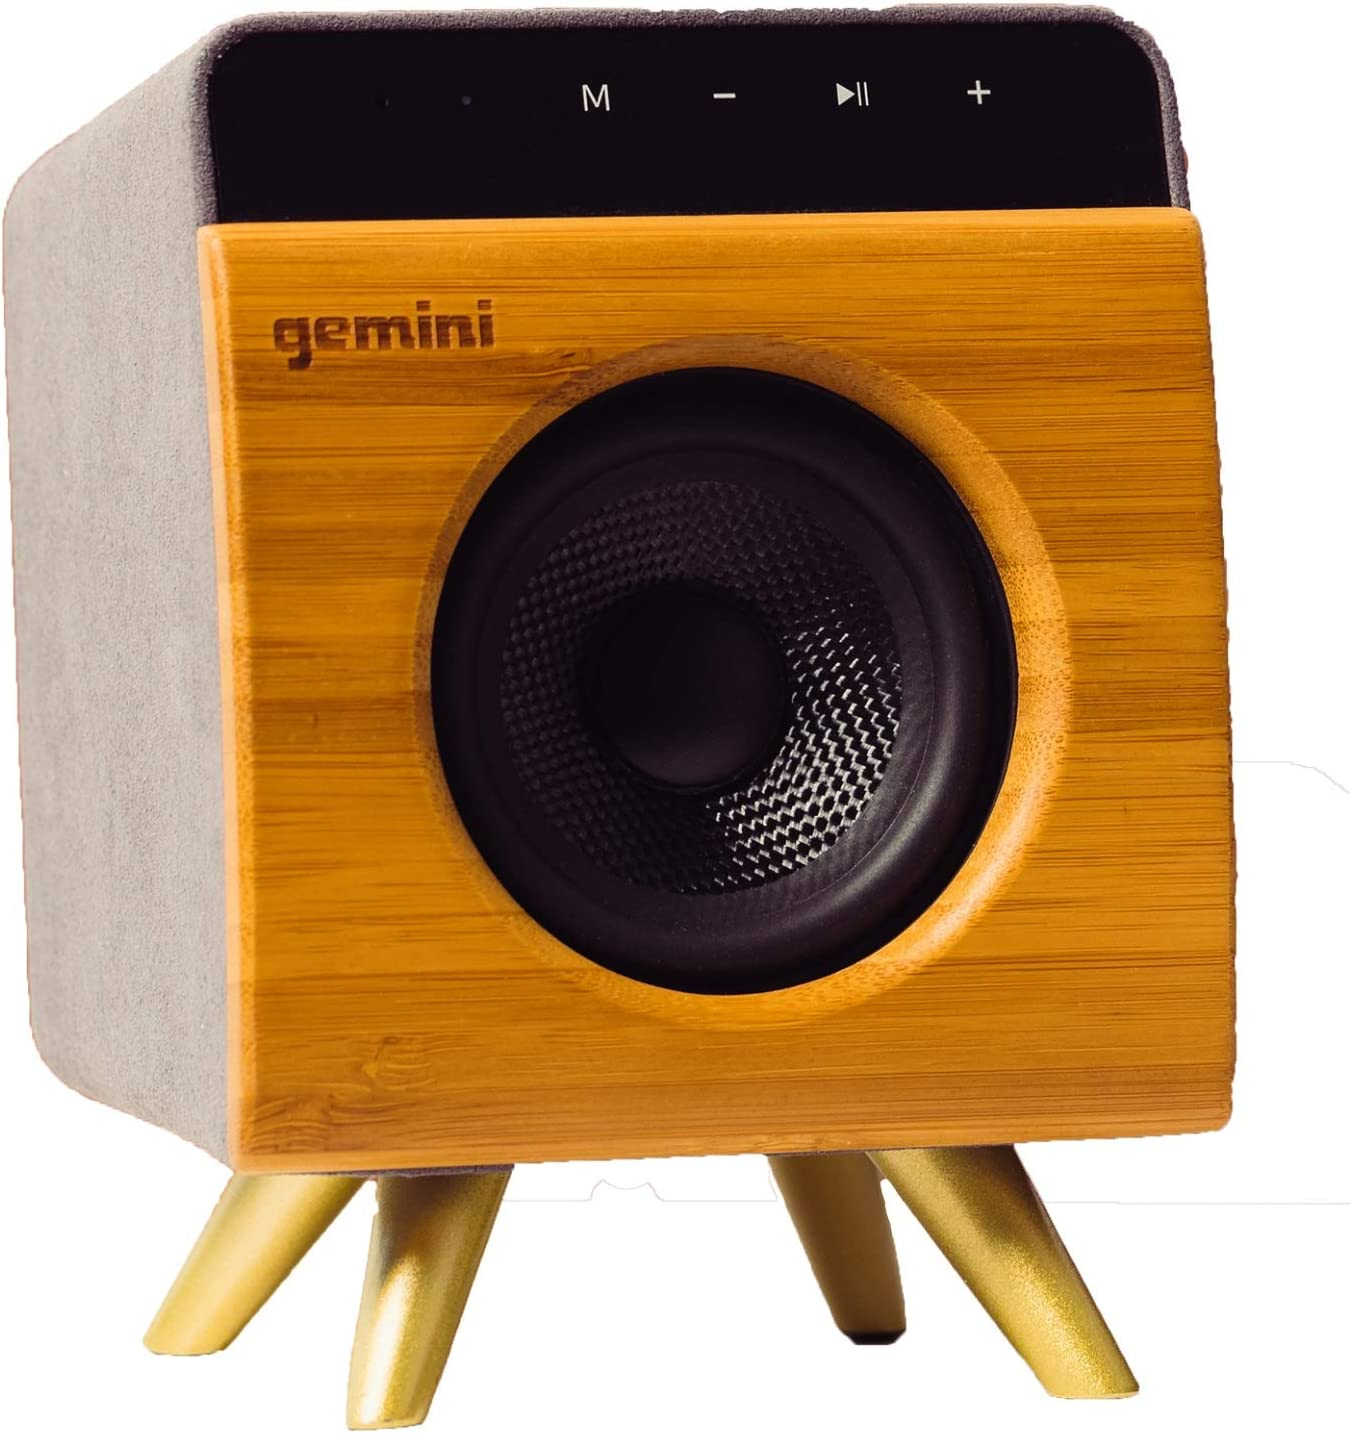 Gemini BRS-9 Portable Bluetooth Speaker 9W Stereo Sound with Built-in  Mic and Battery, USB/SD Playback, 9.9MM Auxiliary Input, Wireless Speaker  for